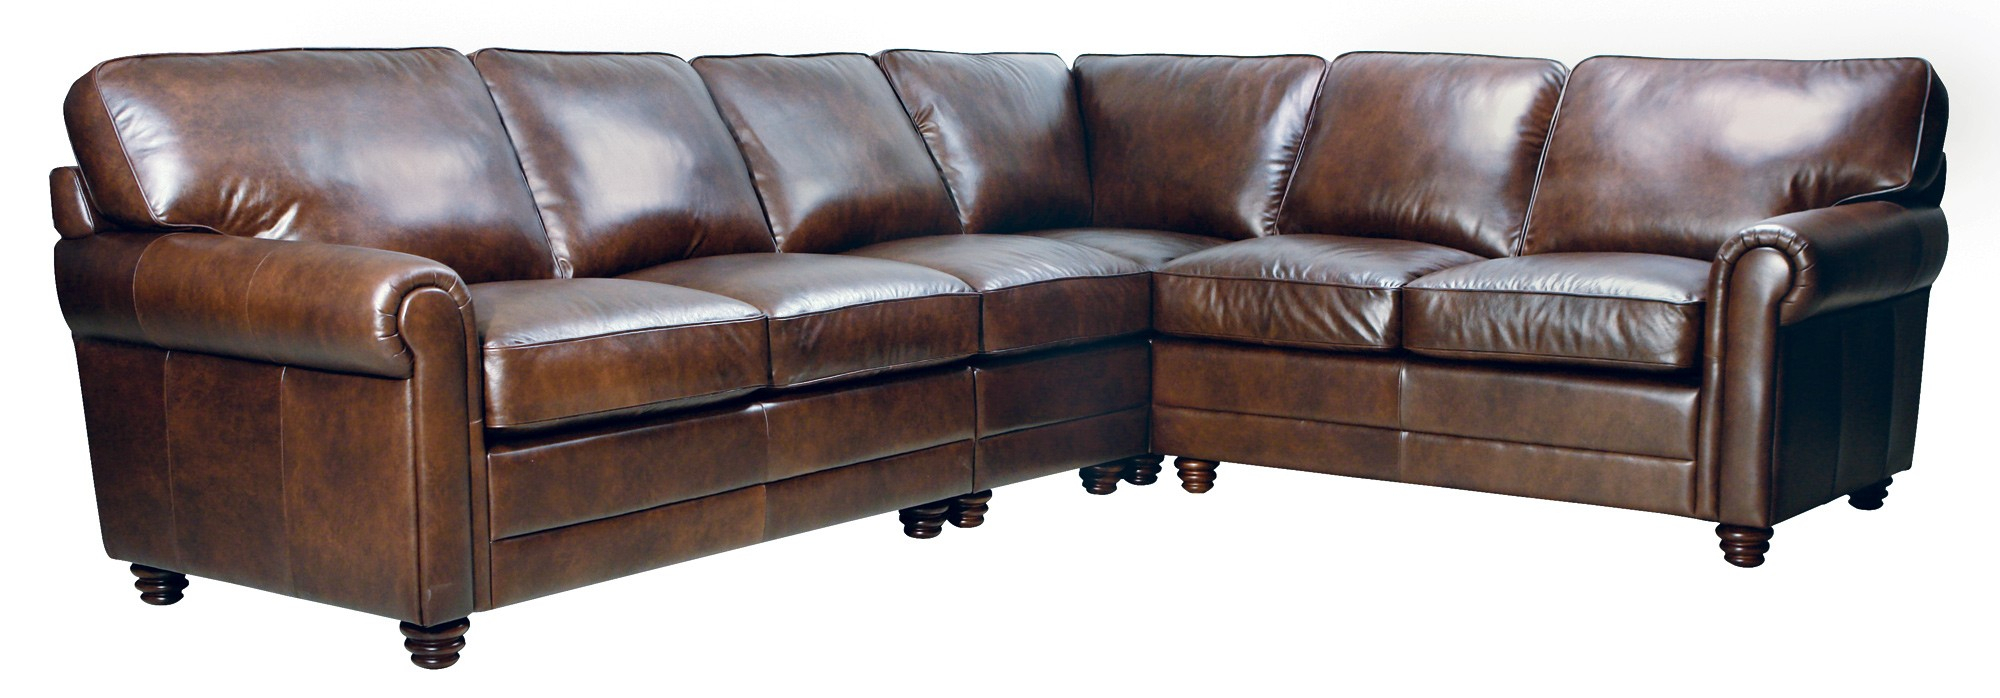 Andrew Sectional – Luke Leather Furniture Within Andrew Leather Sofa Chairs (Image 13 of 25)